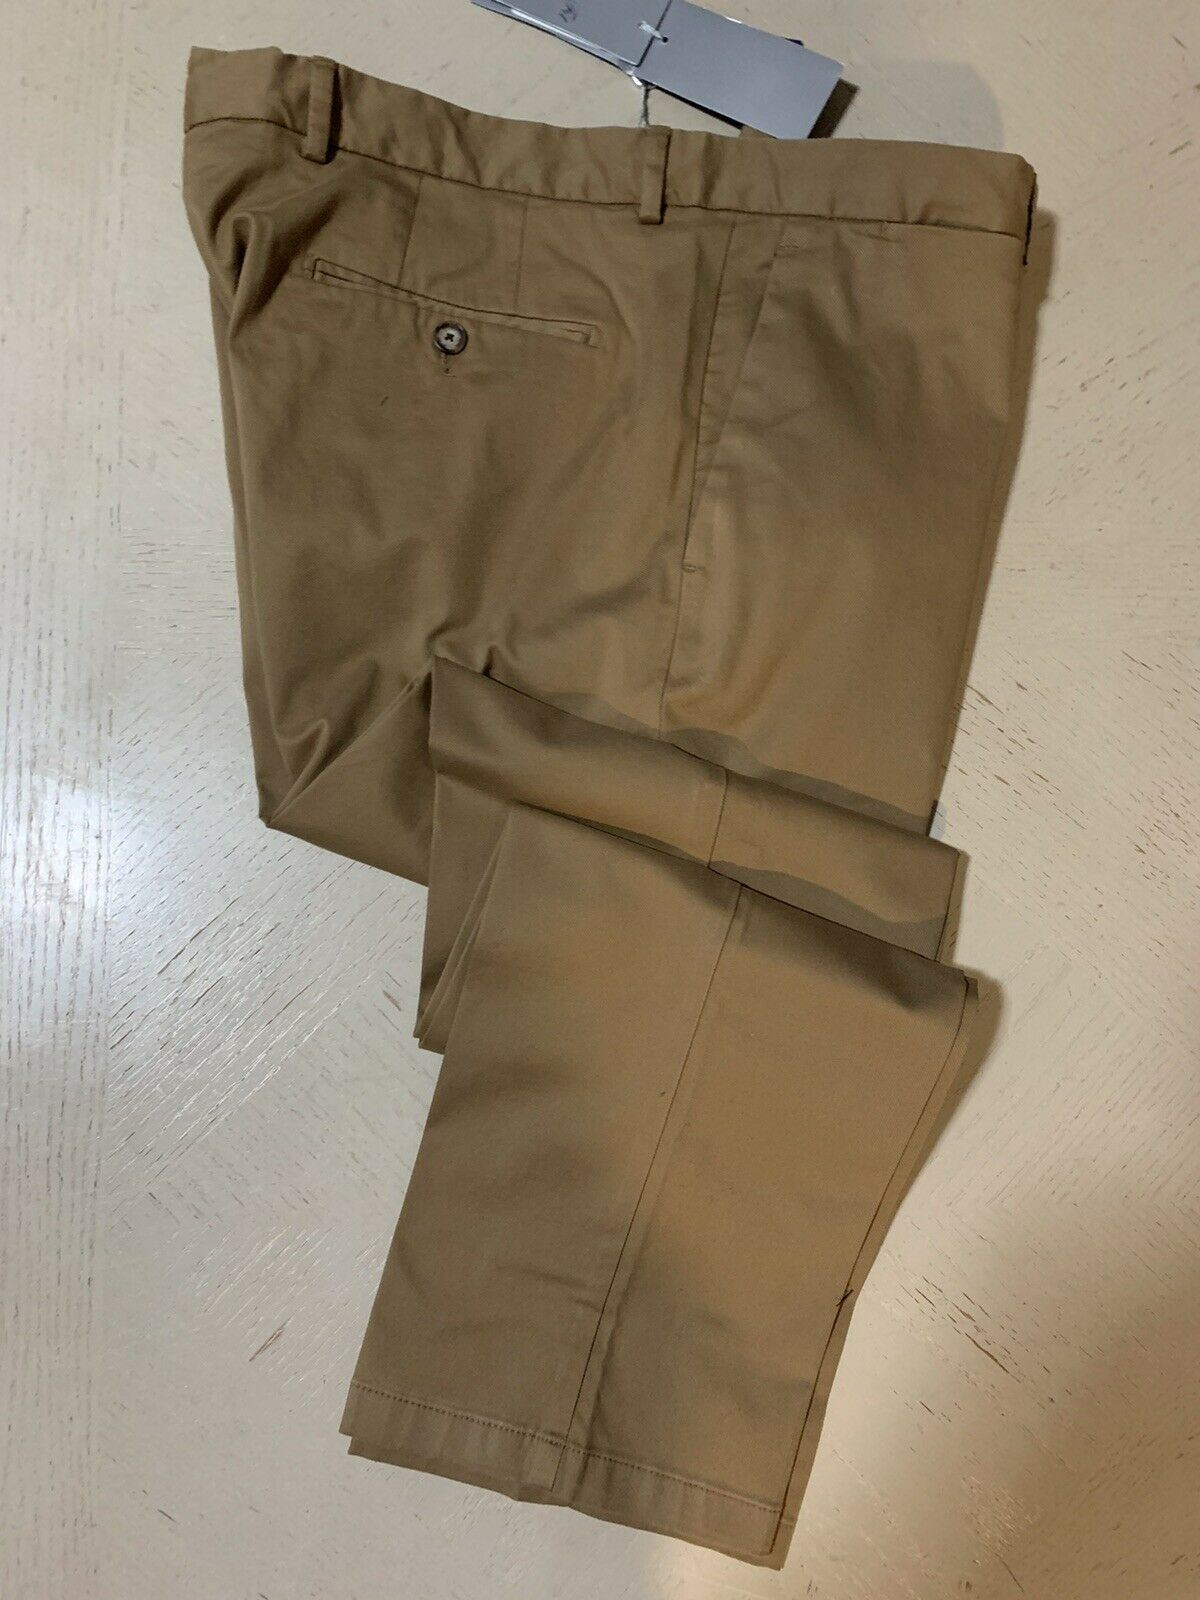 NWT $450 Ralph Lauren Purple Label Mens  Pants Slim Fit Green 38/32L US